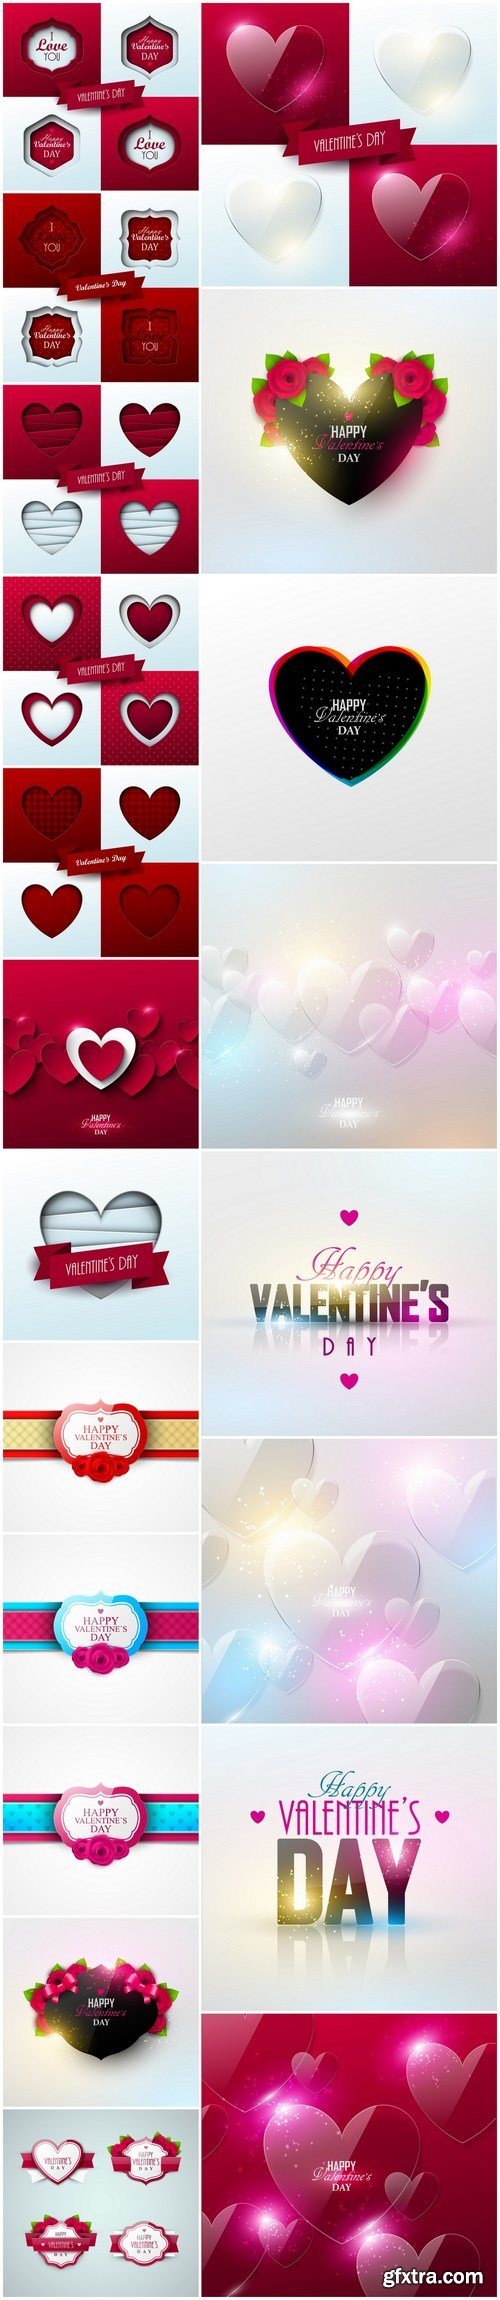 Heart & Love - Happy Valentines Day - Set of http://www.filenext.com/1tugz6bnyd3r/Heart_&_Love_-_Happy_Valentines_Day_-_Set_of_20xEPS_Professional_Vector_Stock.rar.html Professional Vector Stock (Копировать)